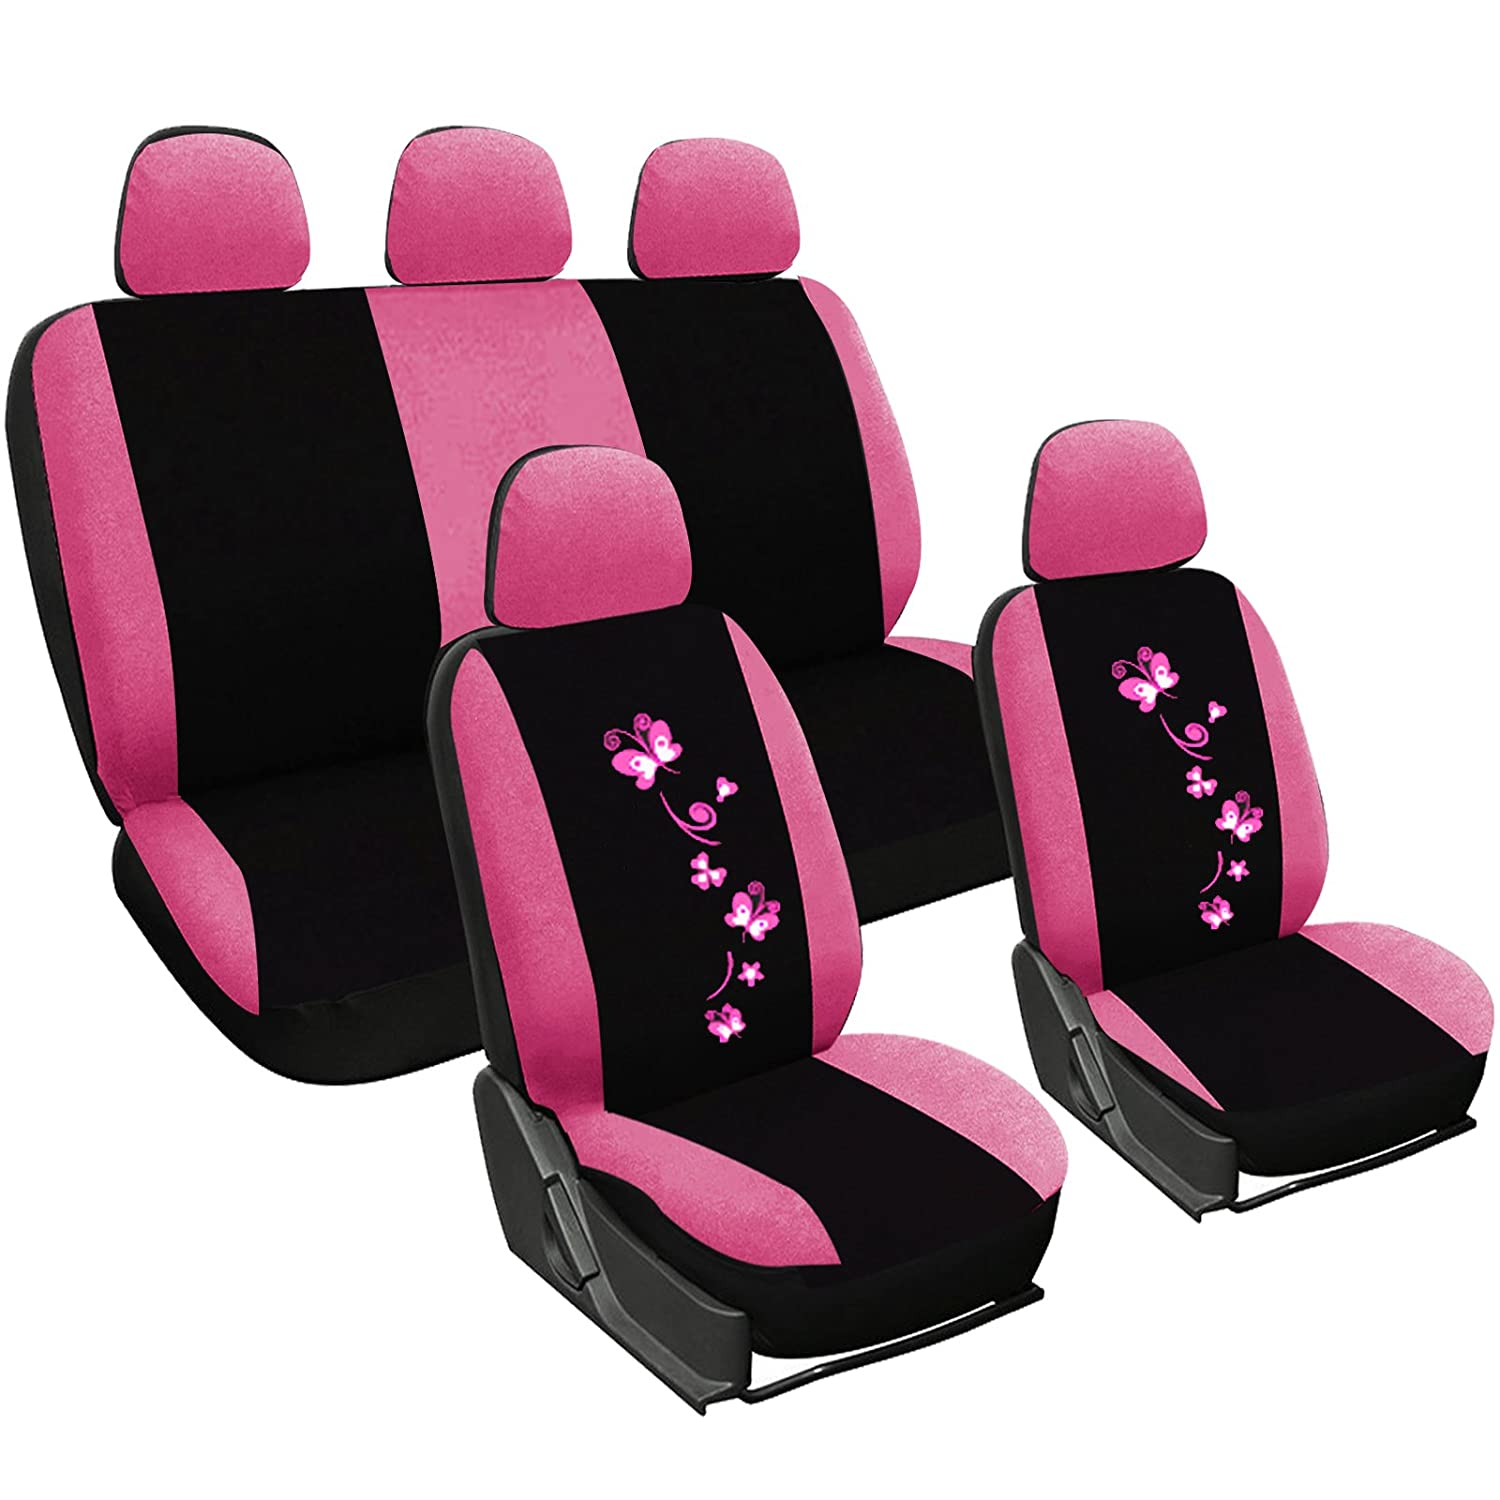 woltu car seat covers black and pink full set 5 seaters universial for cars ebay. Black Bedroom Furniture Sets. Home Design Ideas